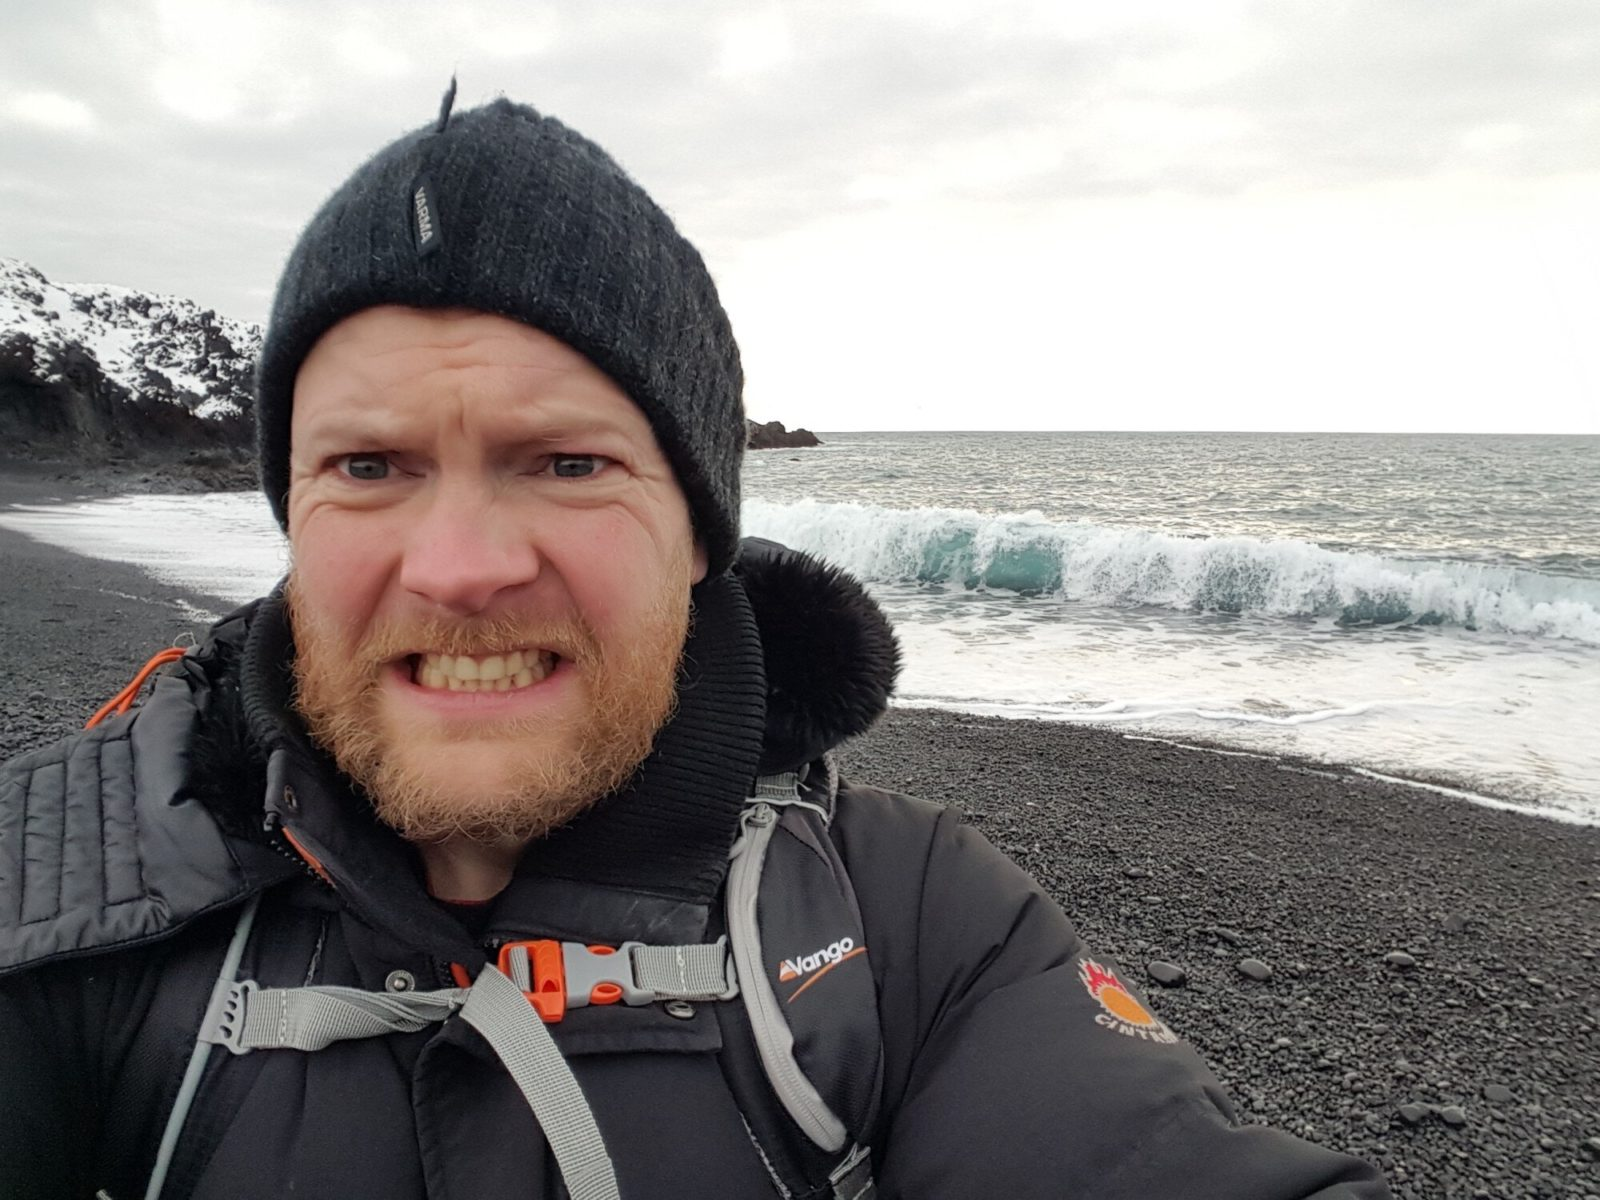 Witness me! This dramatic selfie is to warn you about the dangers of Icelandic beaches. Sometimes the waves can roll in with extreme power.